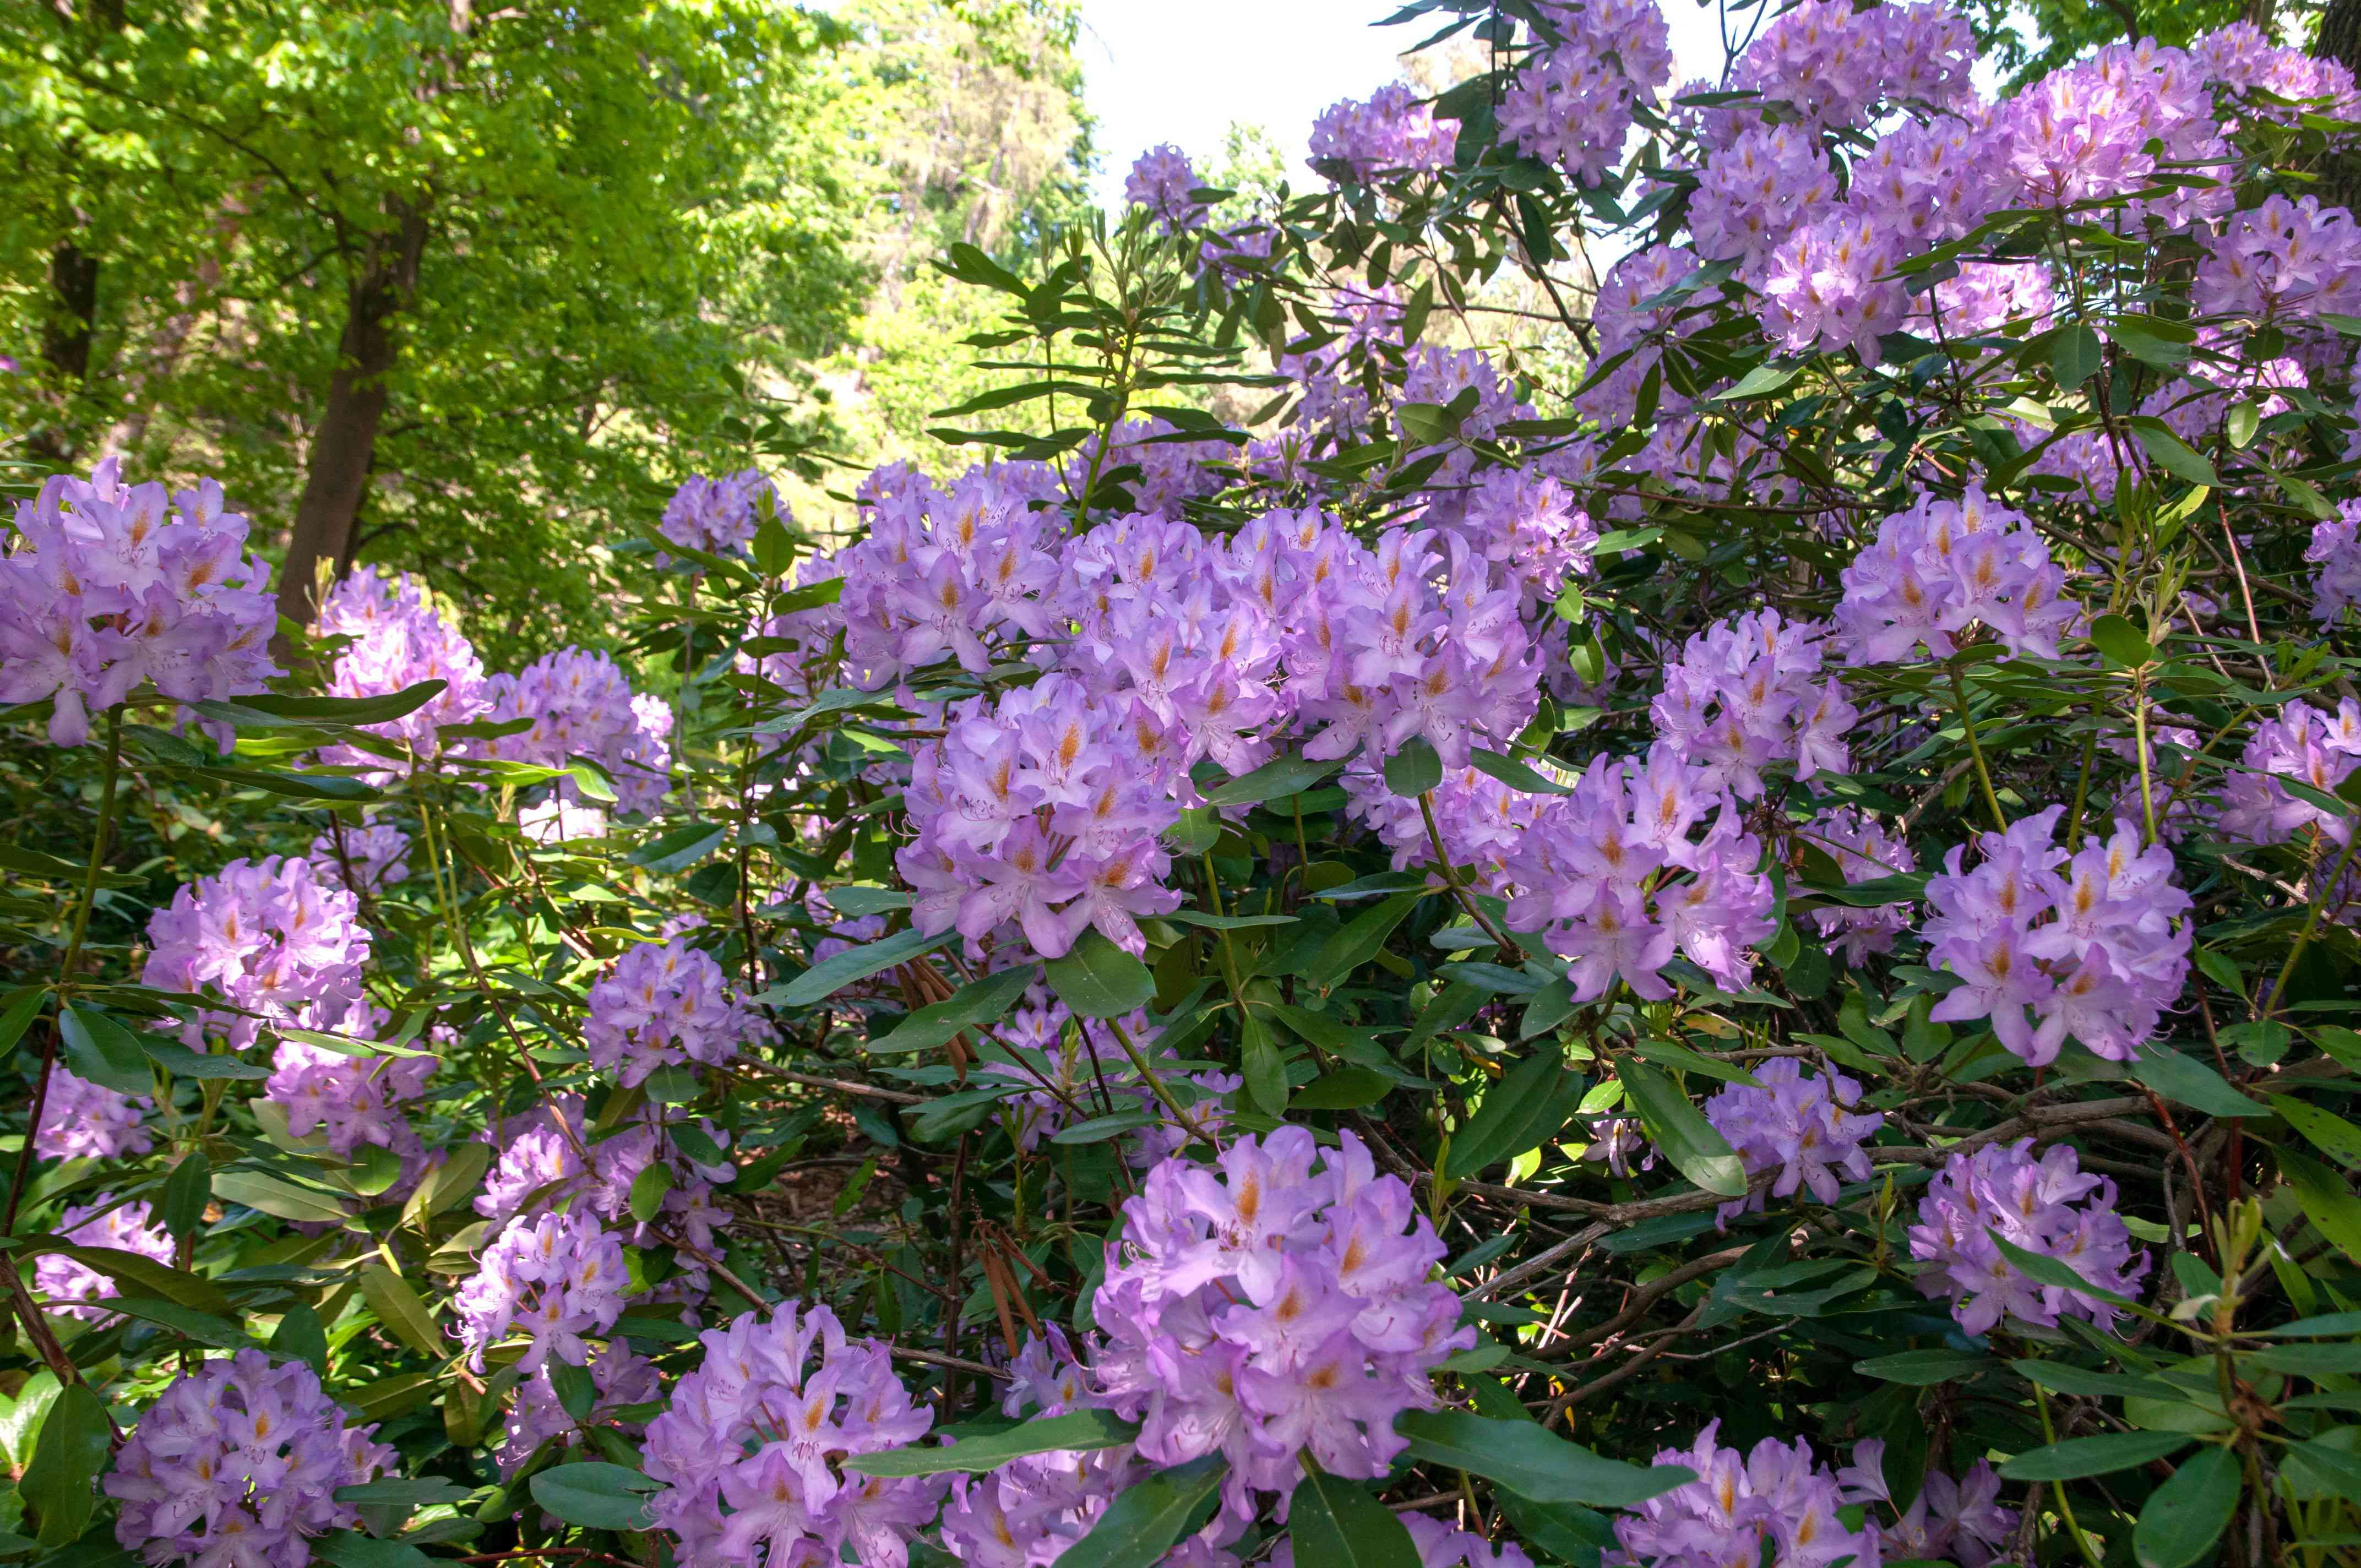 Rhododendron shrub with light purple flowers clustered on tall branches